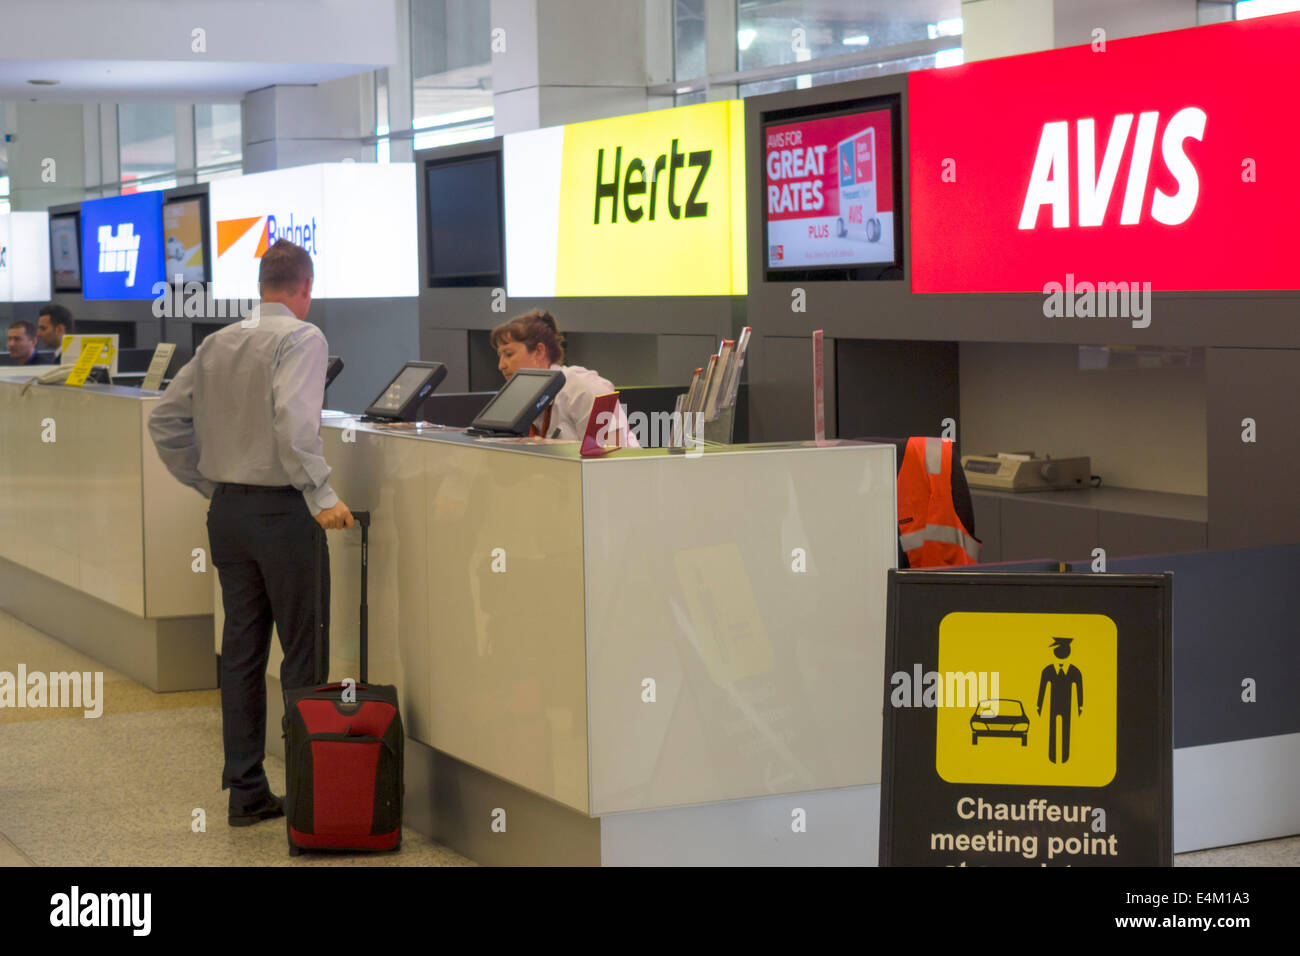 Auto Mieten Halle Hertz Rental Stockfotos And Hertz Rental Bilder Alamy